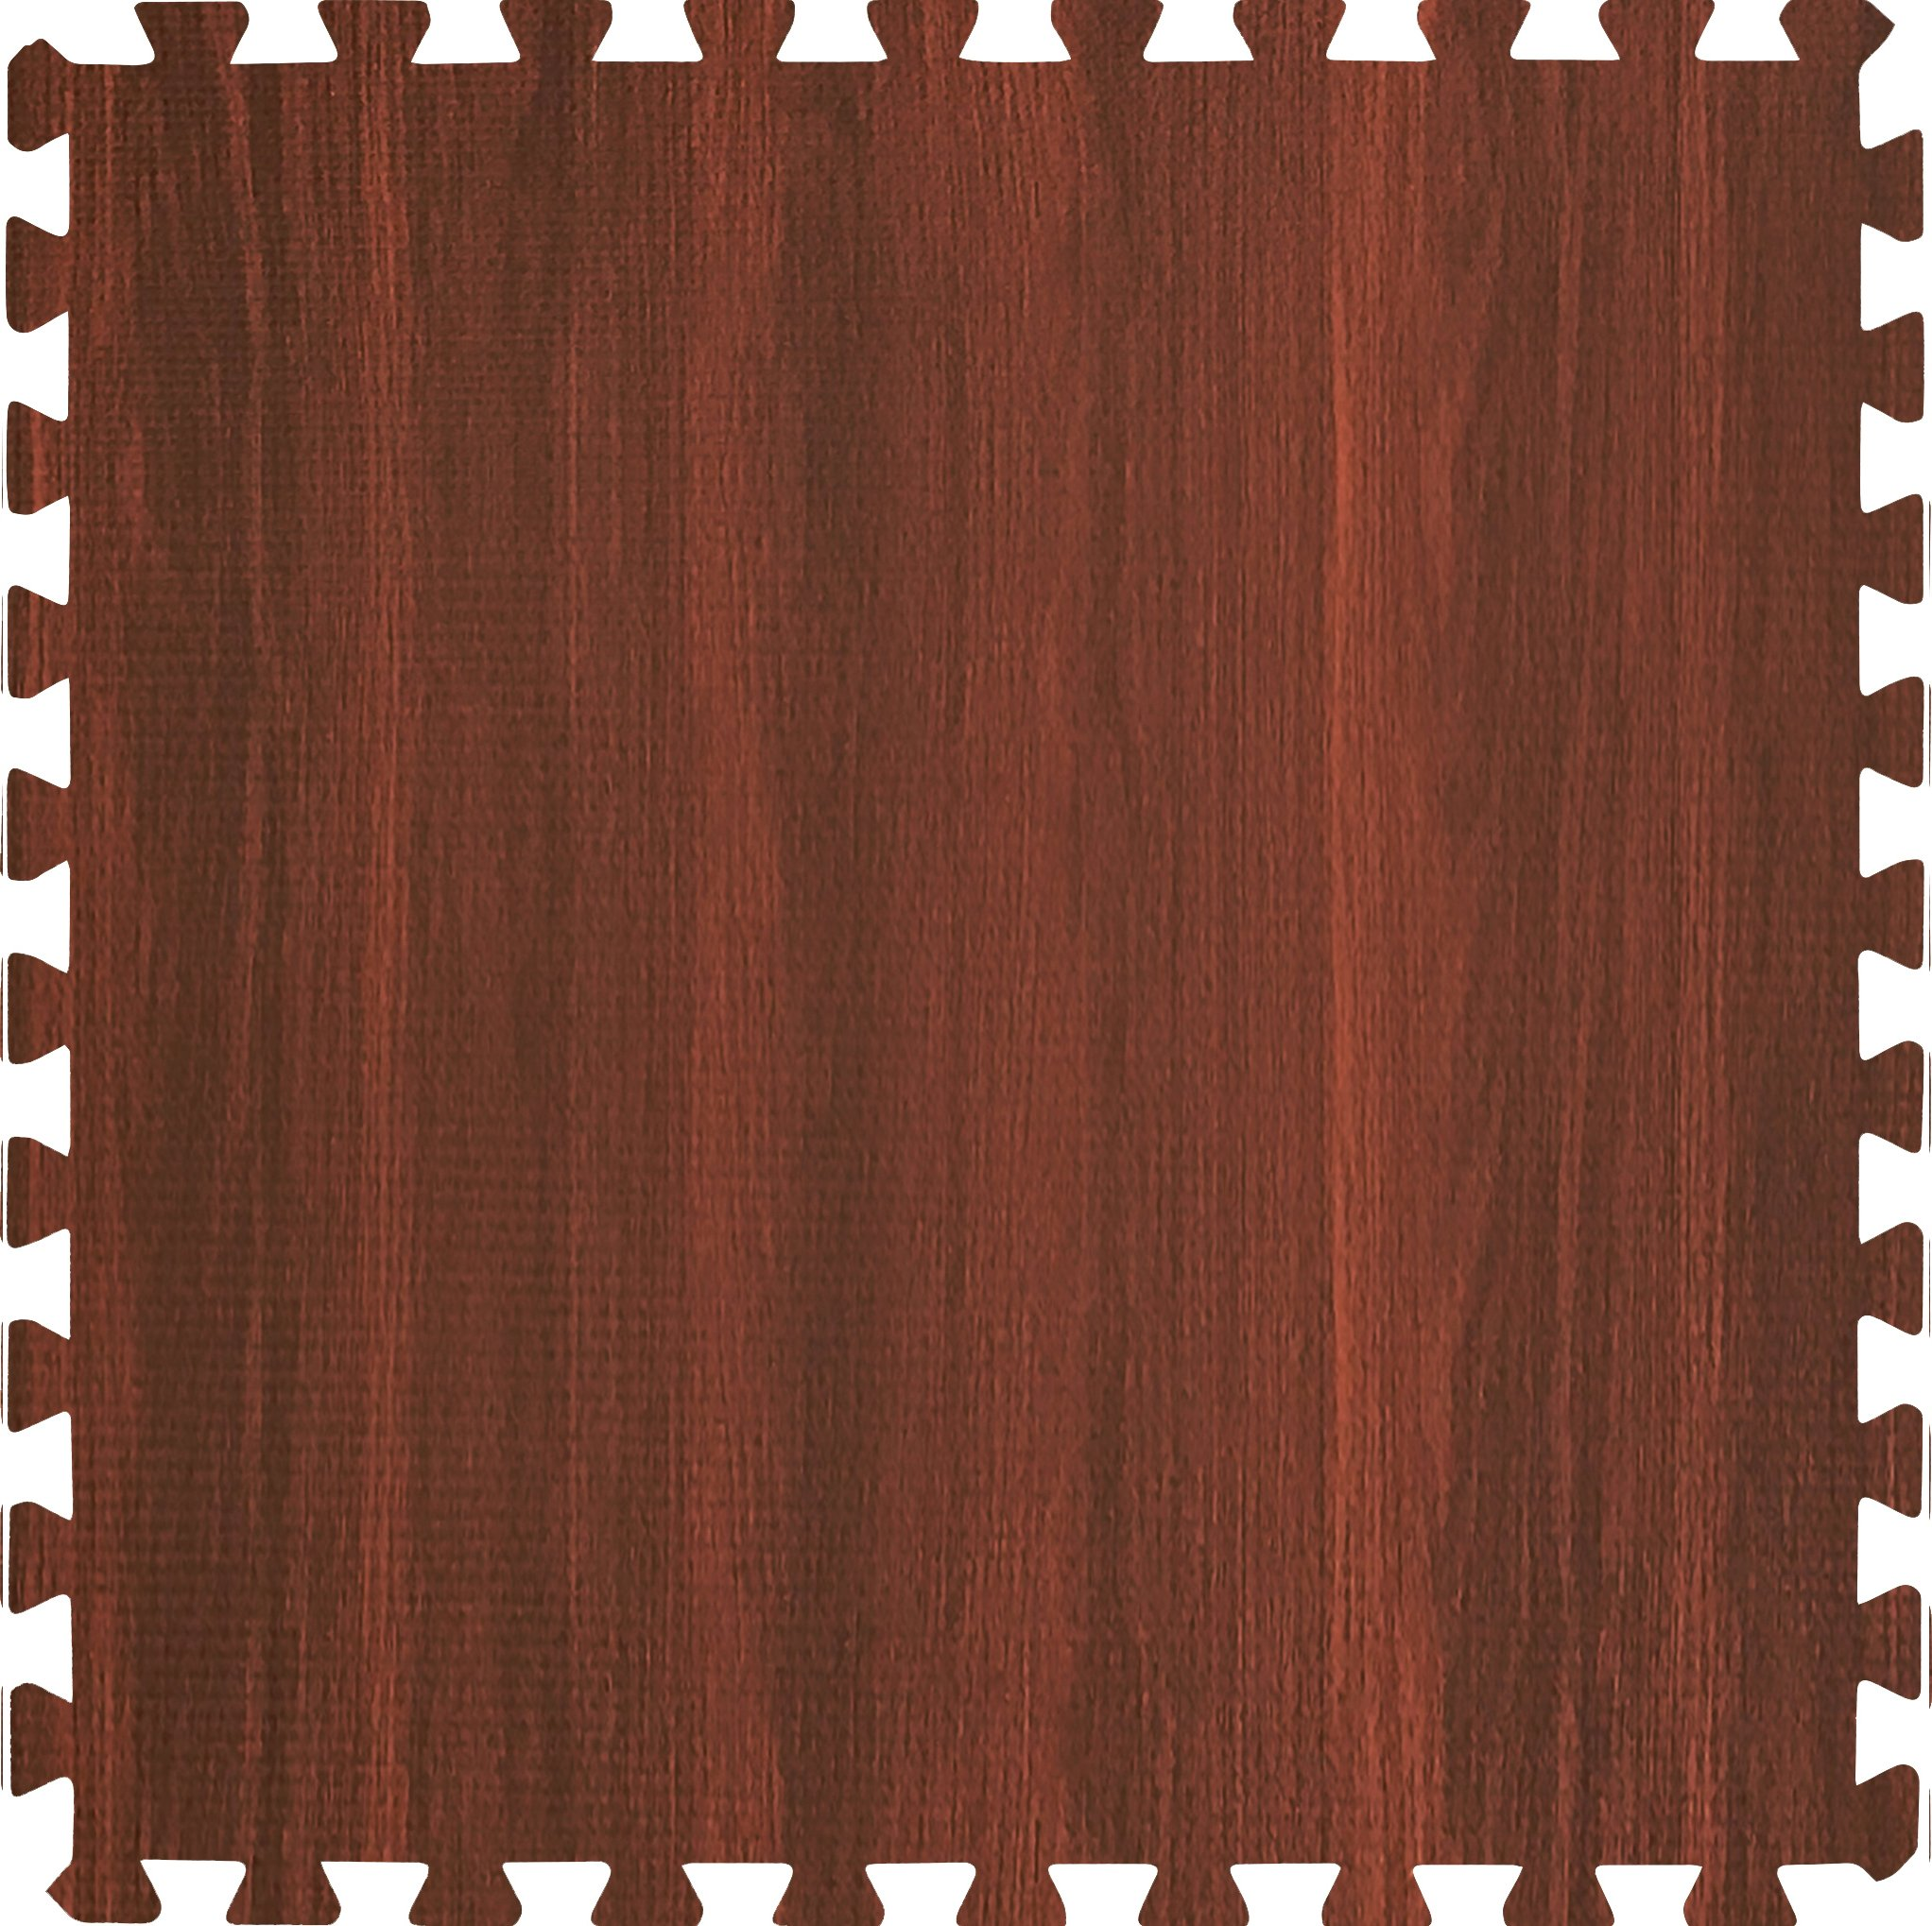 Sorbus Wood Floor Mats Foam Interlocking Wood Mats Each Tile 4 Square Feet 3/8-Inch Thick Puzzle Wood Tiles with Borders – for Home Office Playroom Basement (6 Tiles 24 Sq ft, Wood Grain - Cherry) by Sorbus (Image #2)